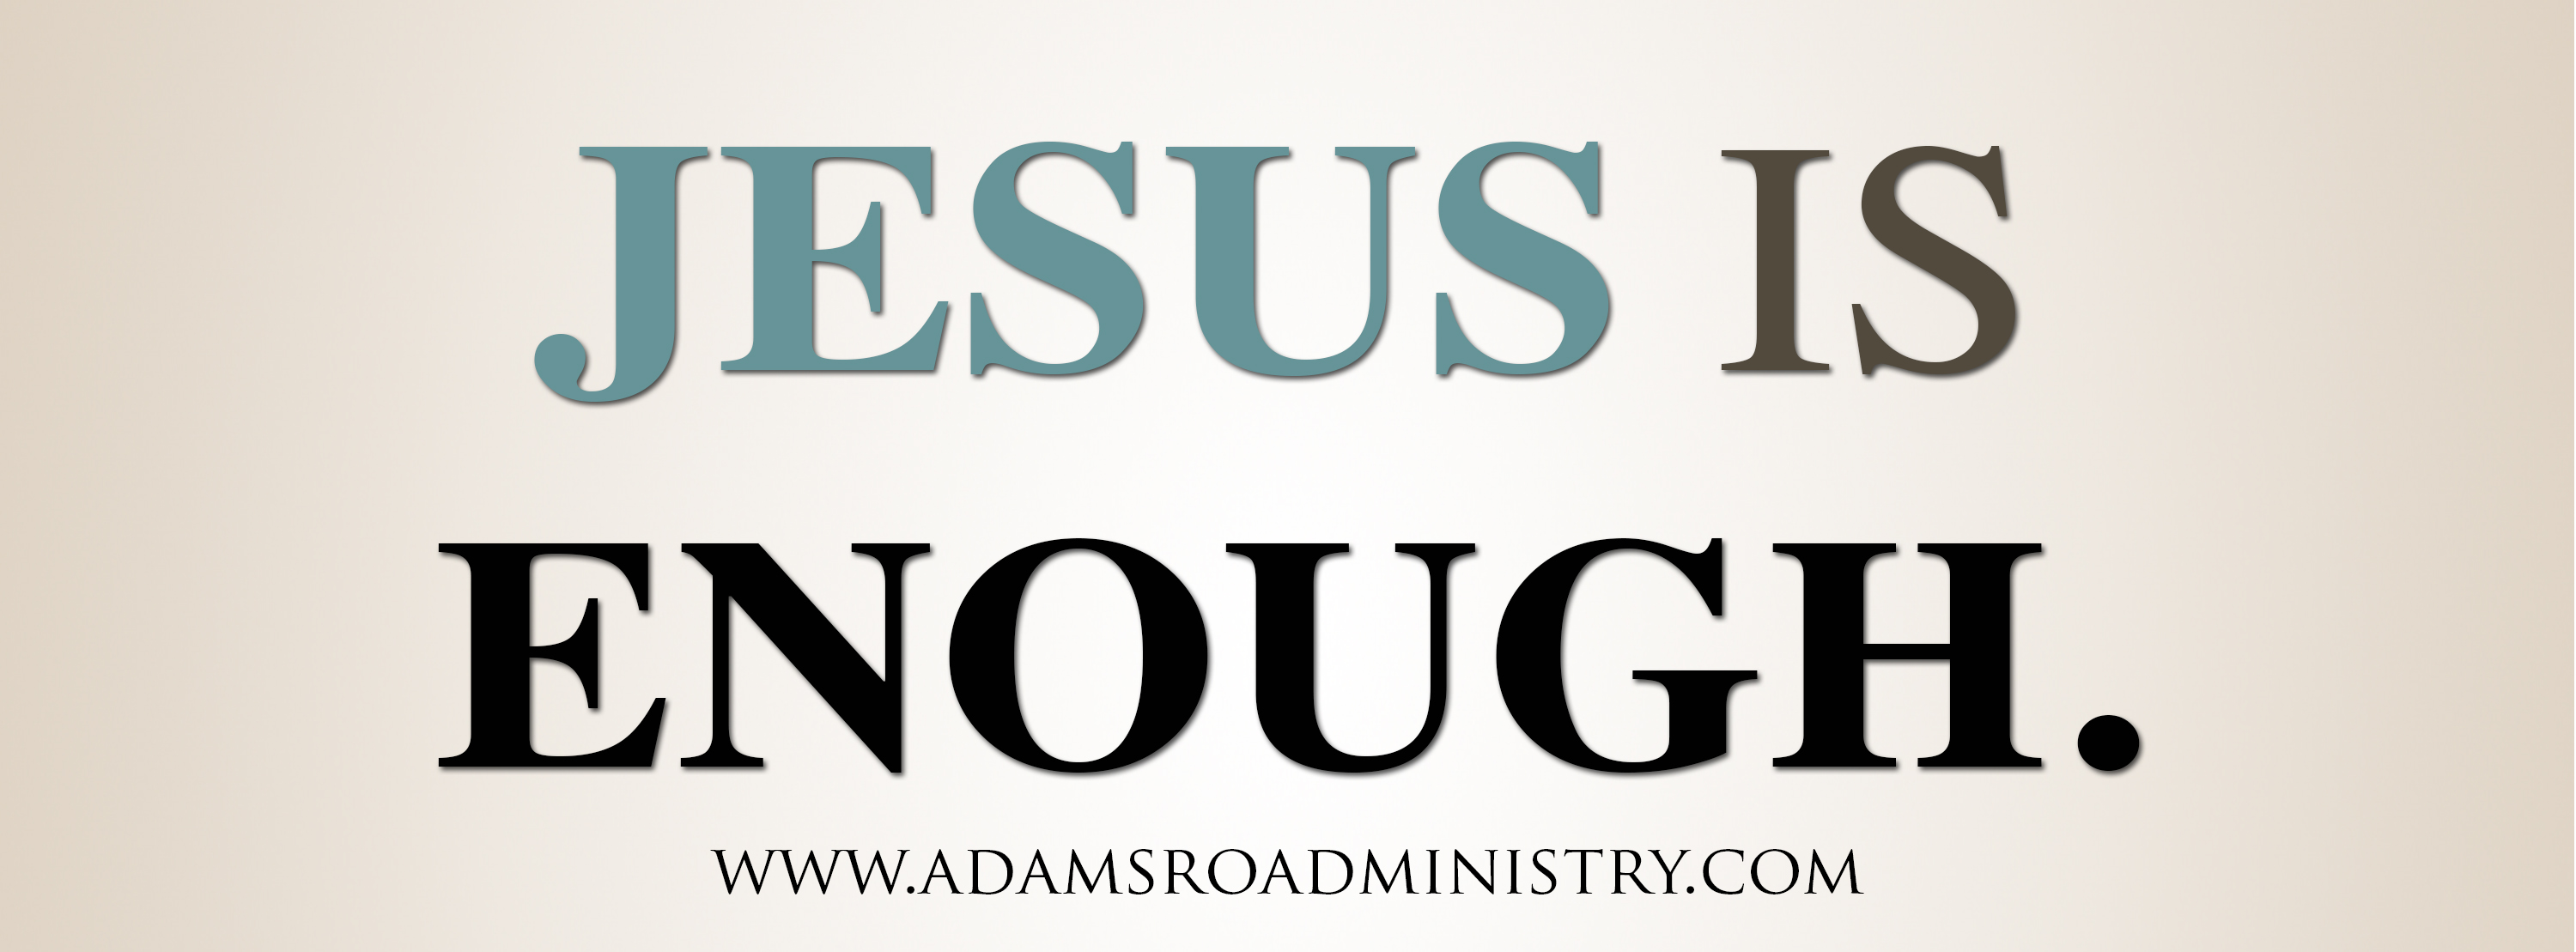 Jesus is Enough  Banner